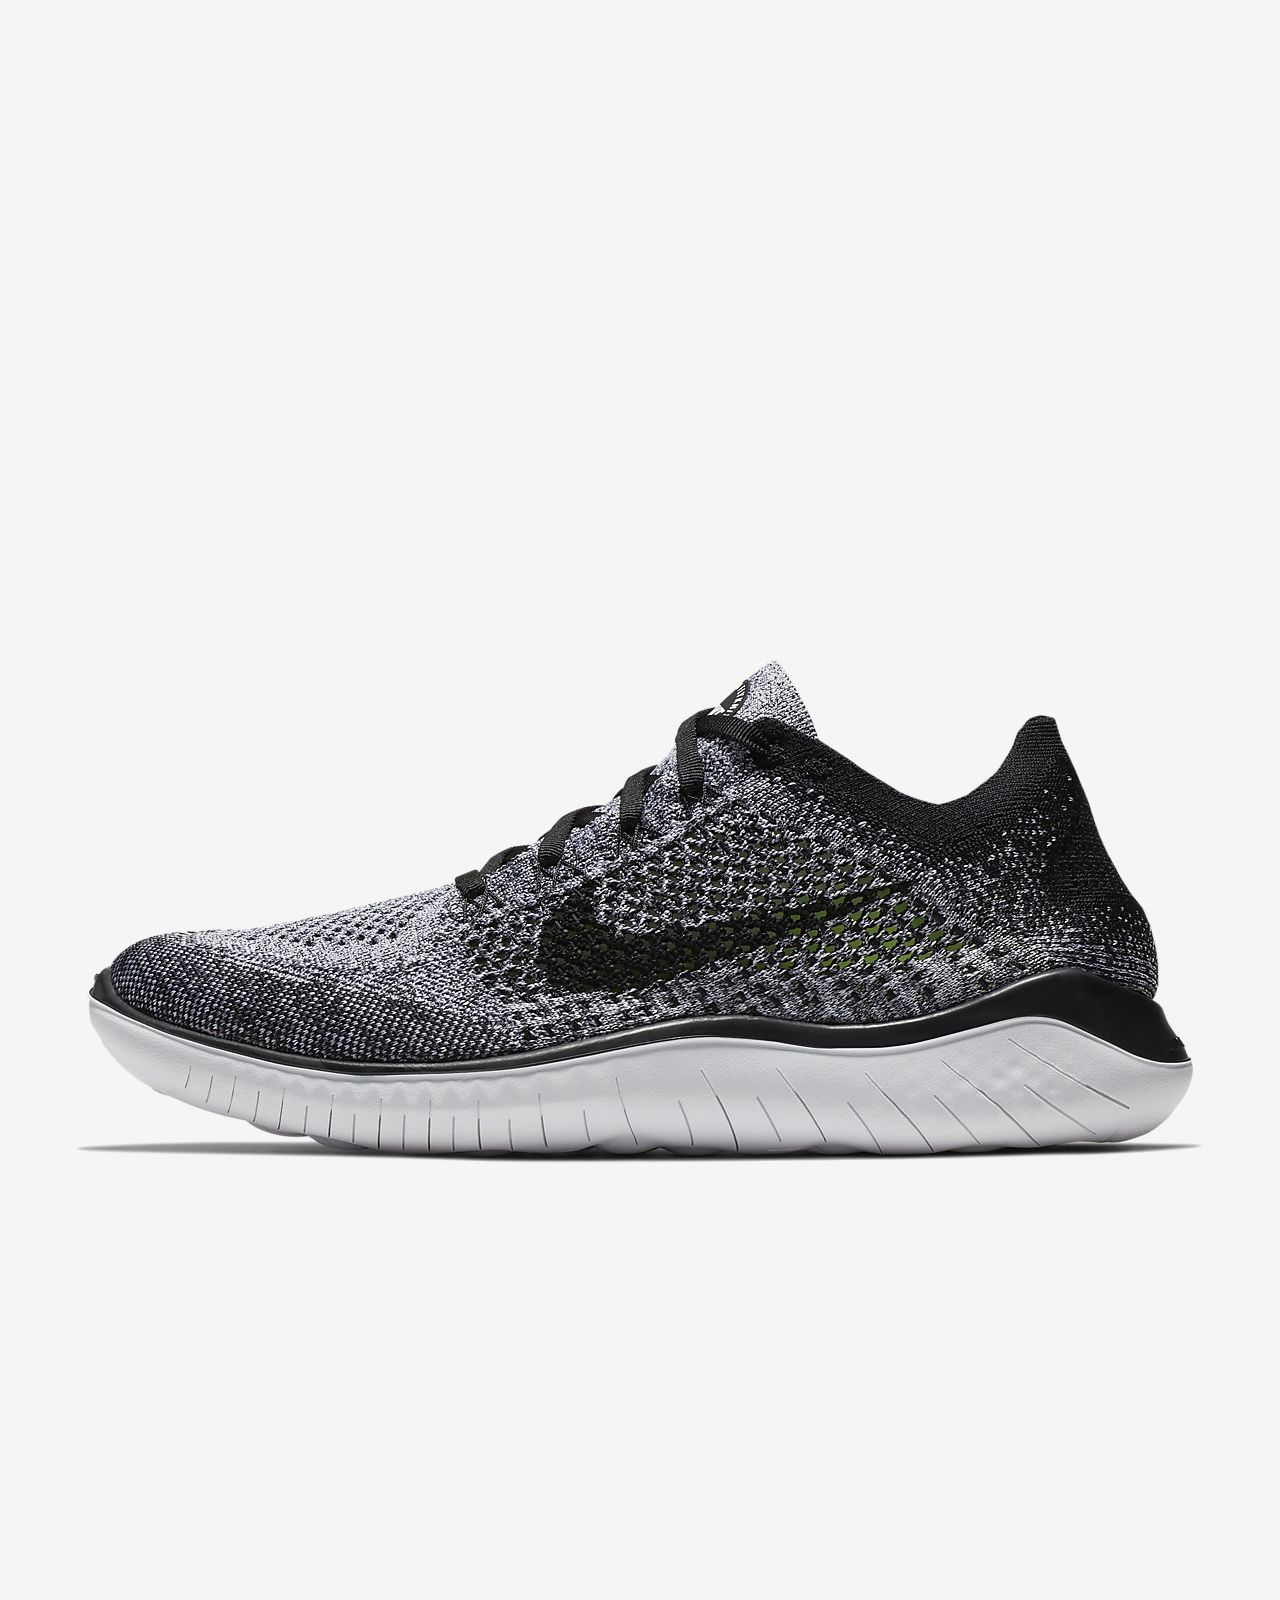 100% authentic 49dc7 ffcc7 ... wholesale nike free rn flyknit 2018 mens running shoe a64d4 00f03